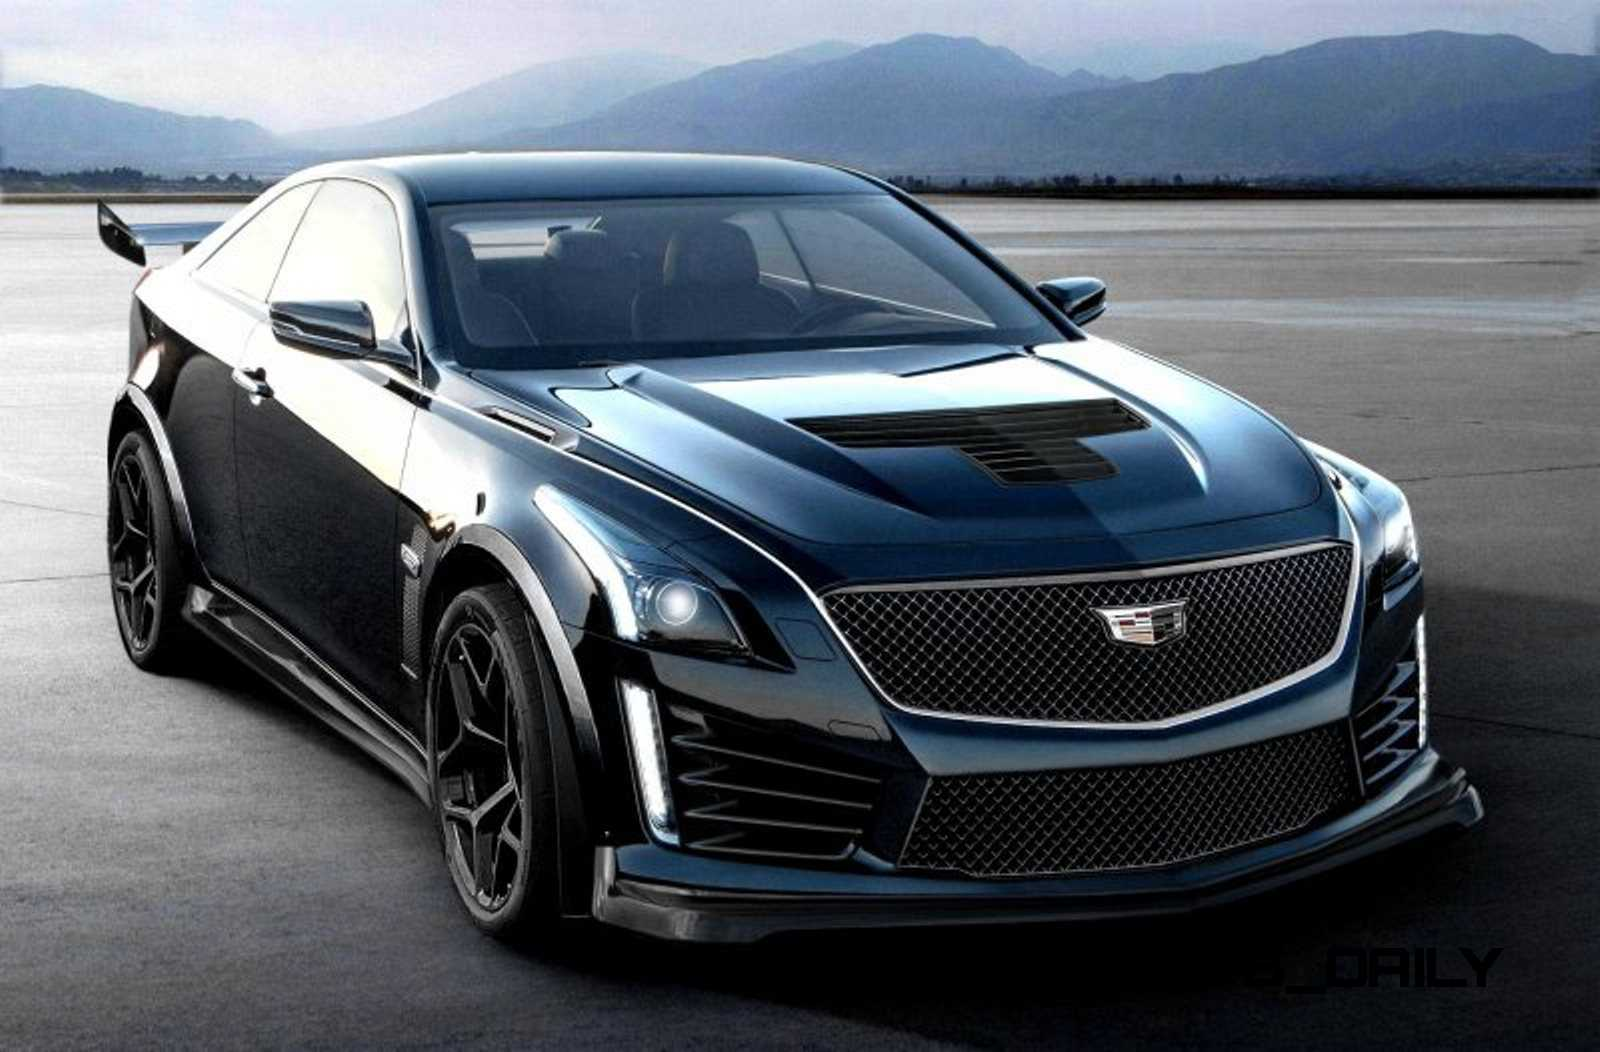 2017 cadillac cts rs. Black Bedroom Furniture Sets. Home Design Ideas